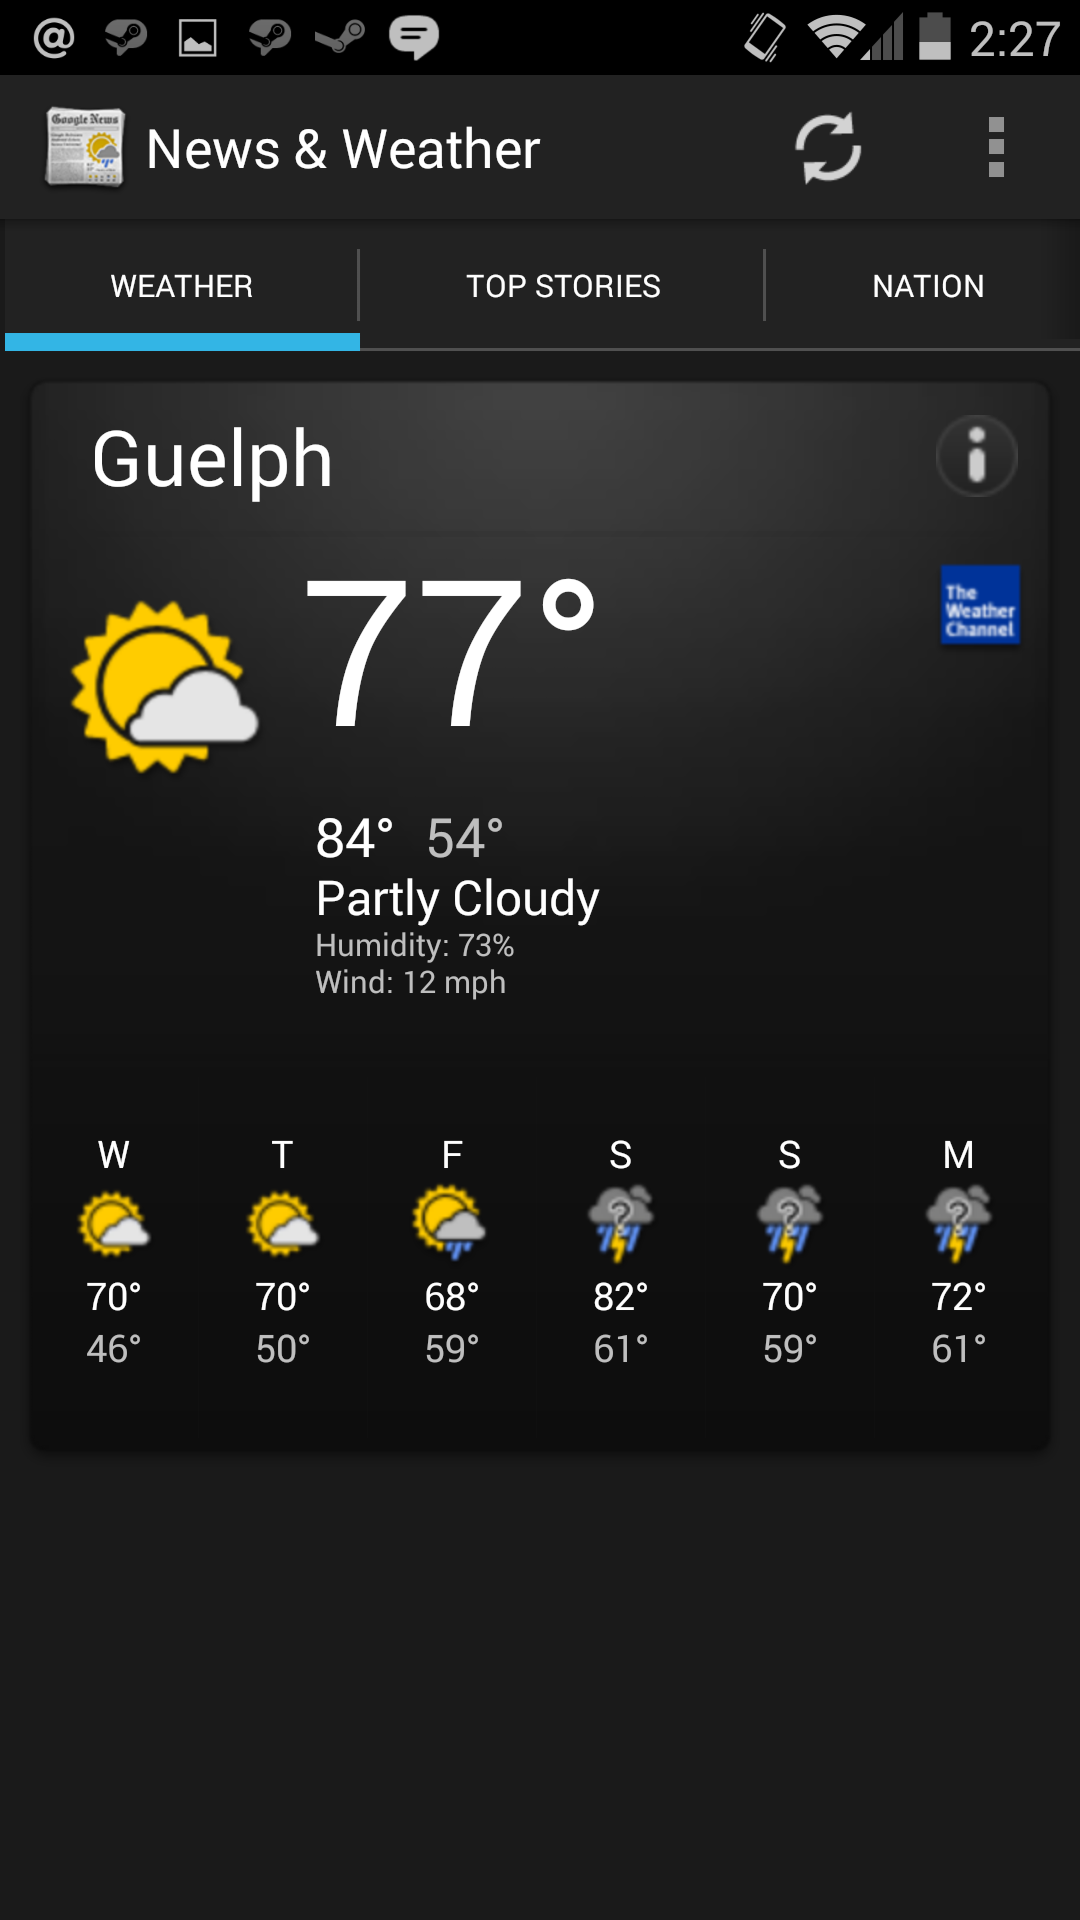 Google 39 s news weather app updated to version 2 0 for Goodl